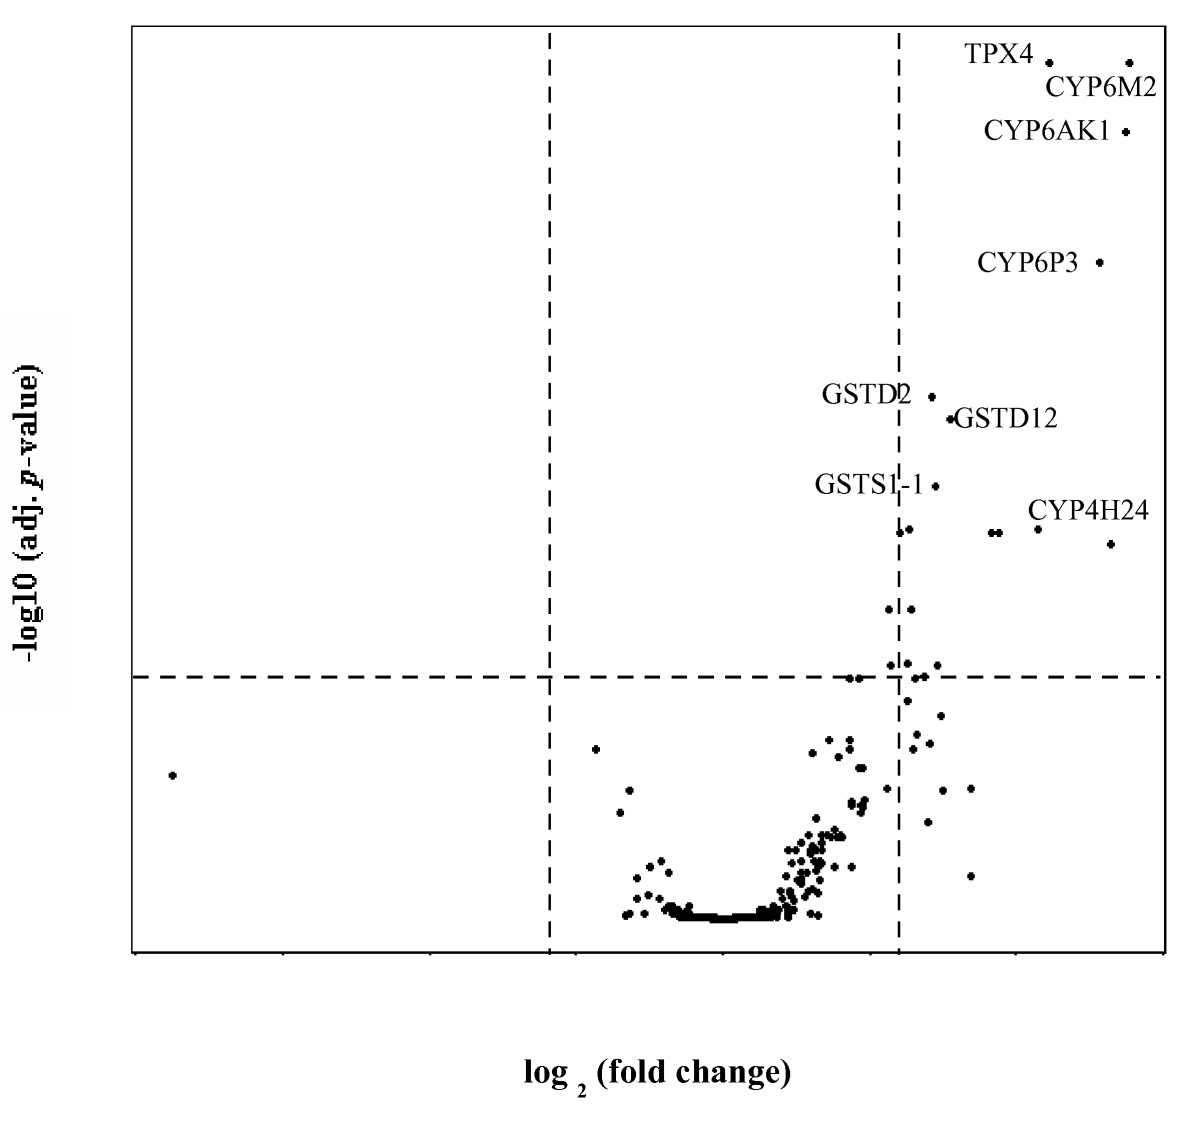 http://static-content.springer.com/image/art%3A10.1186%2F1756-3305-5-113/MediaObjects/13071_2012_Article_626_Fig2_HTML.jpg